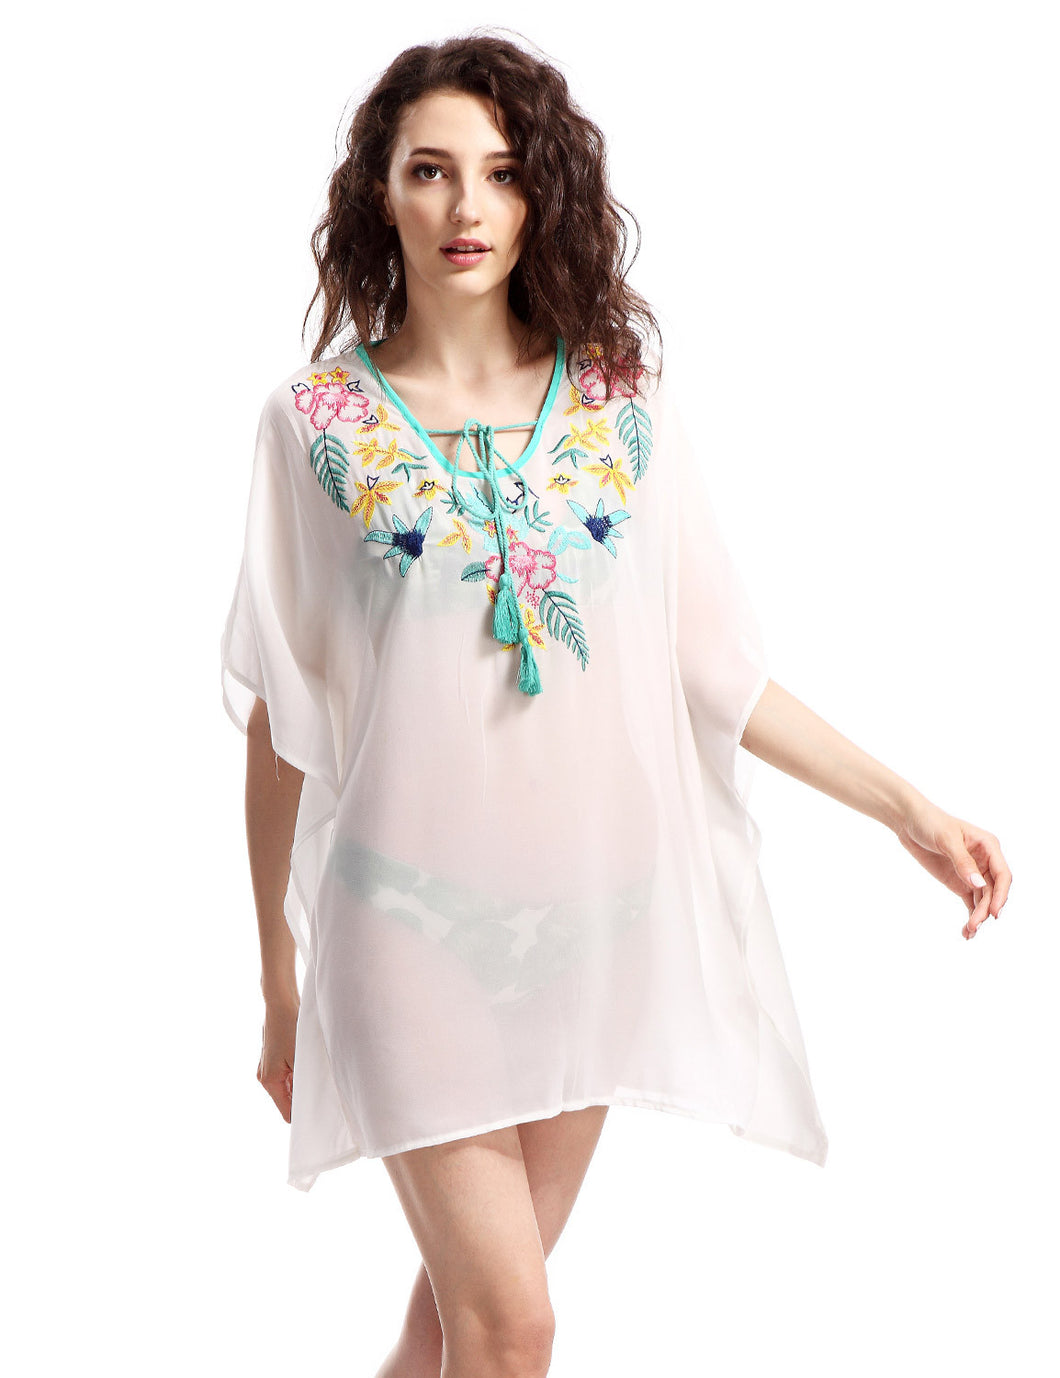 Avoir Aime Women's Boho Oversized Embroidered Chiffon T-Shirt Cover Up - quiescentmind.com